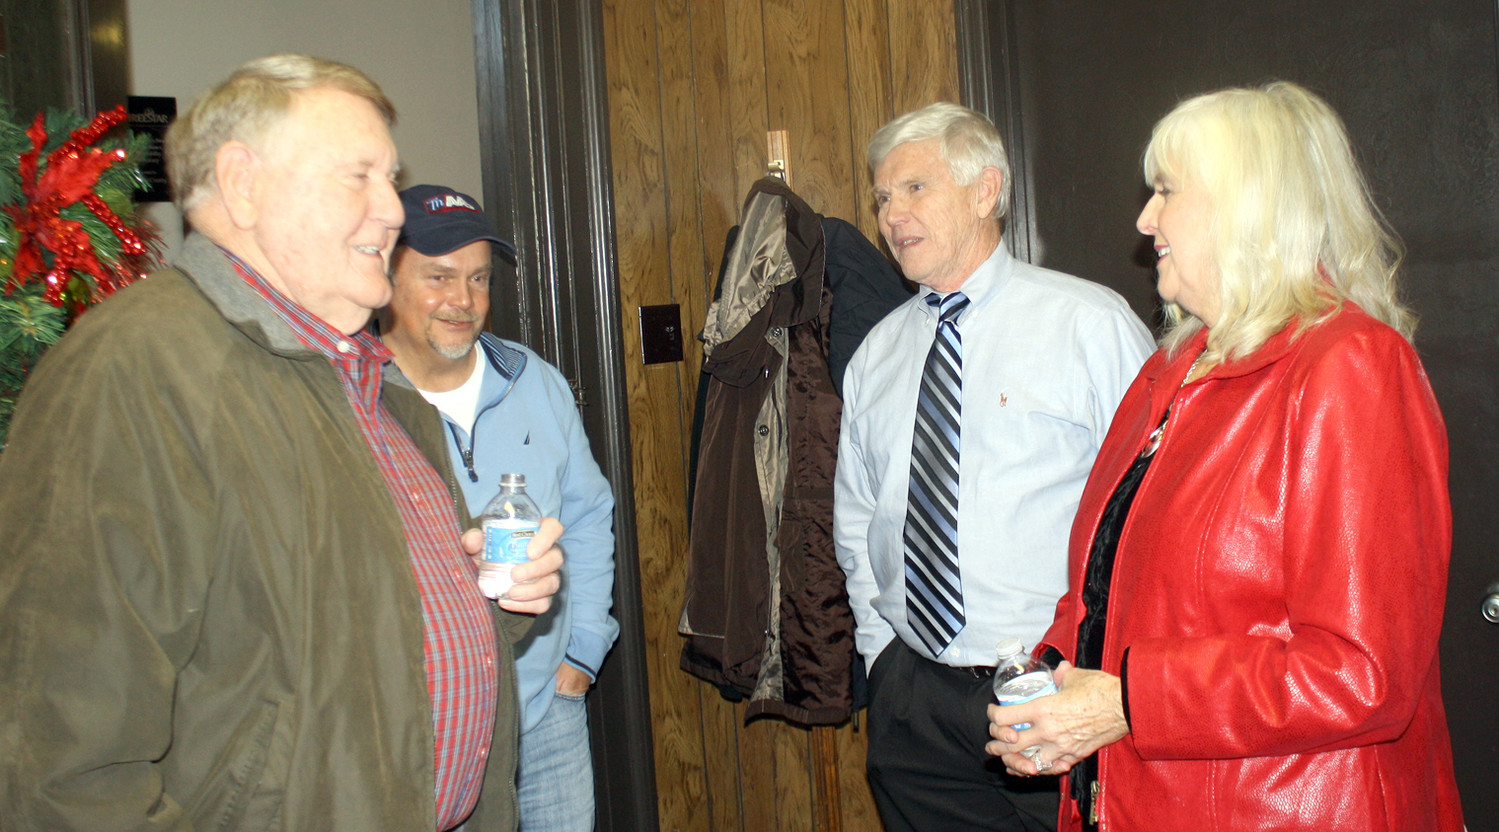 HONOREE JOE DAVIS, second from right, and his wife, Judy, talk with Bradley County Commission Chairman Louie Alford, left, and Keith Dilbeck, second from left, at Friday's retirement reception.